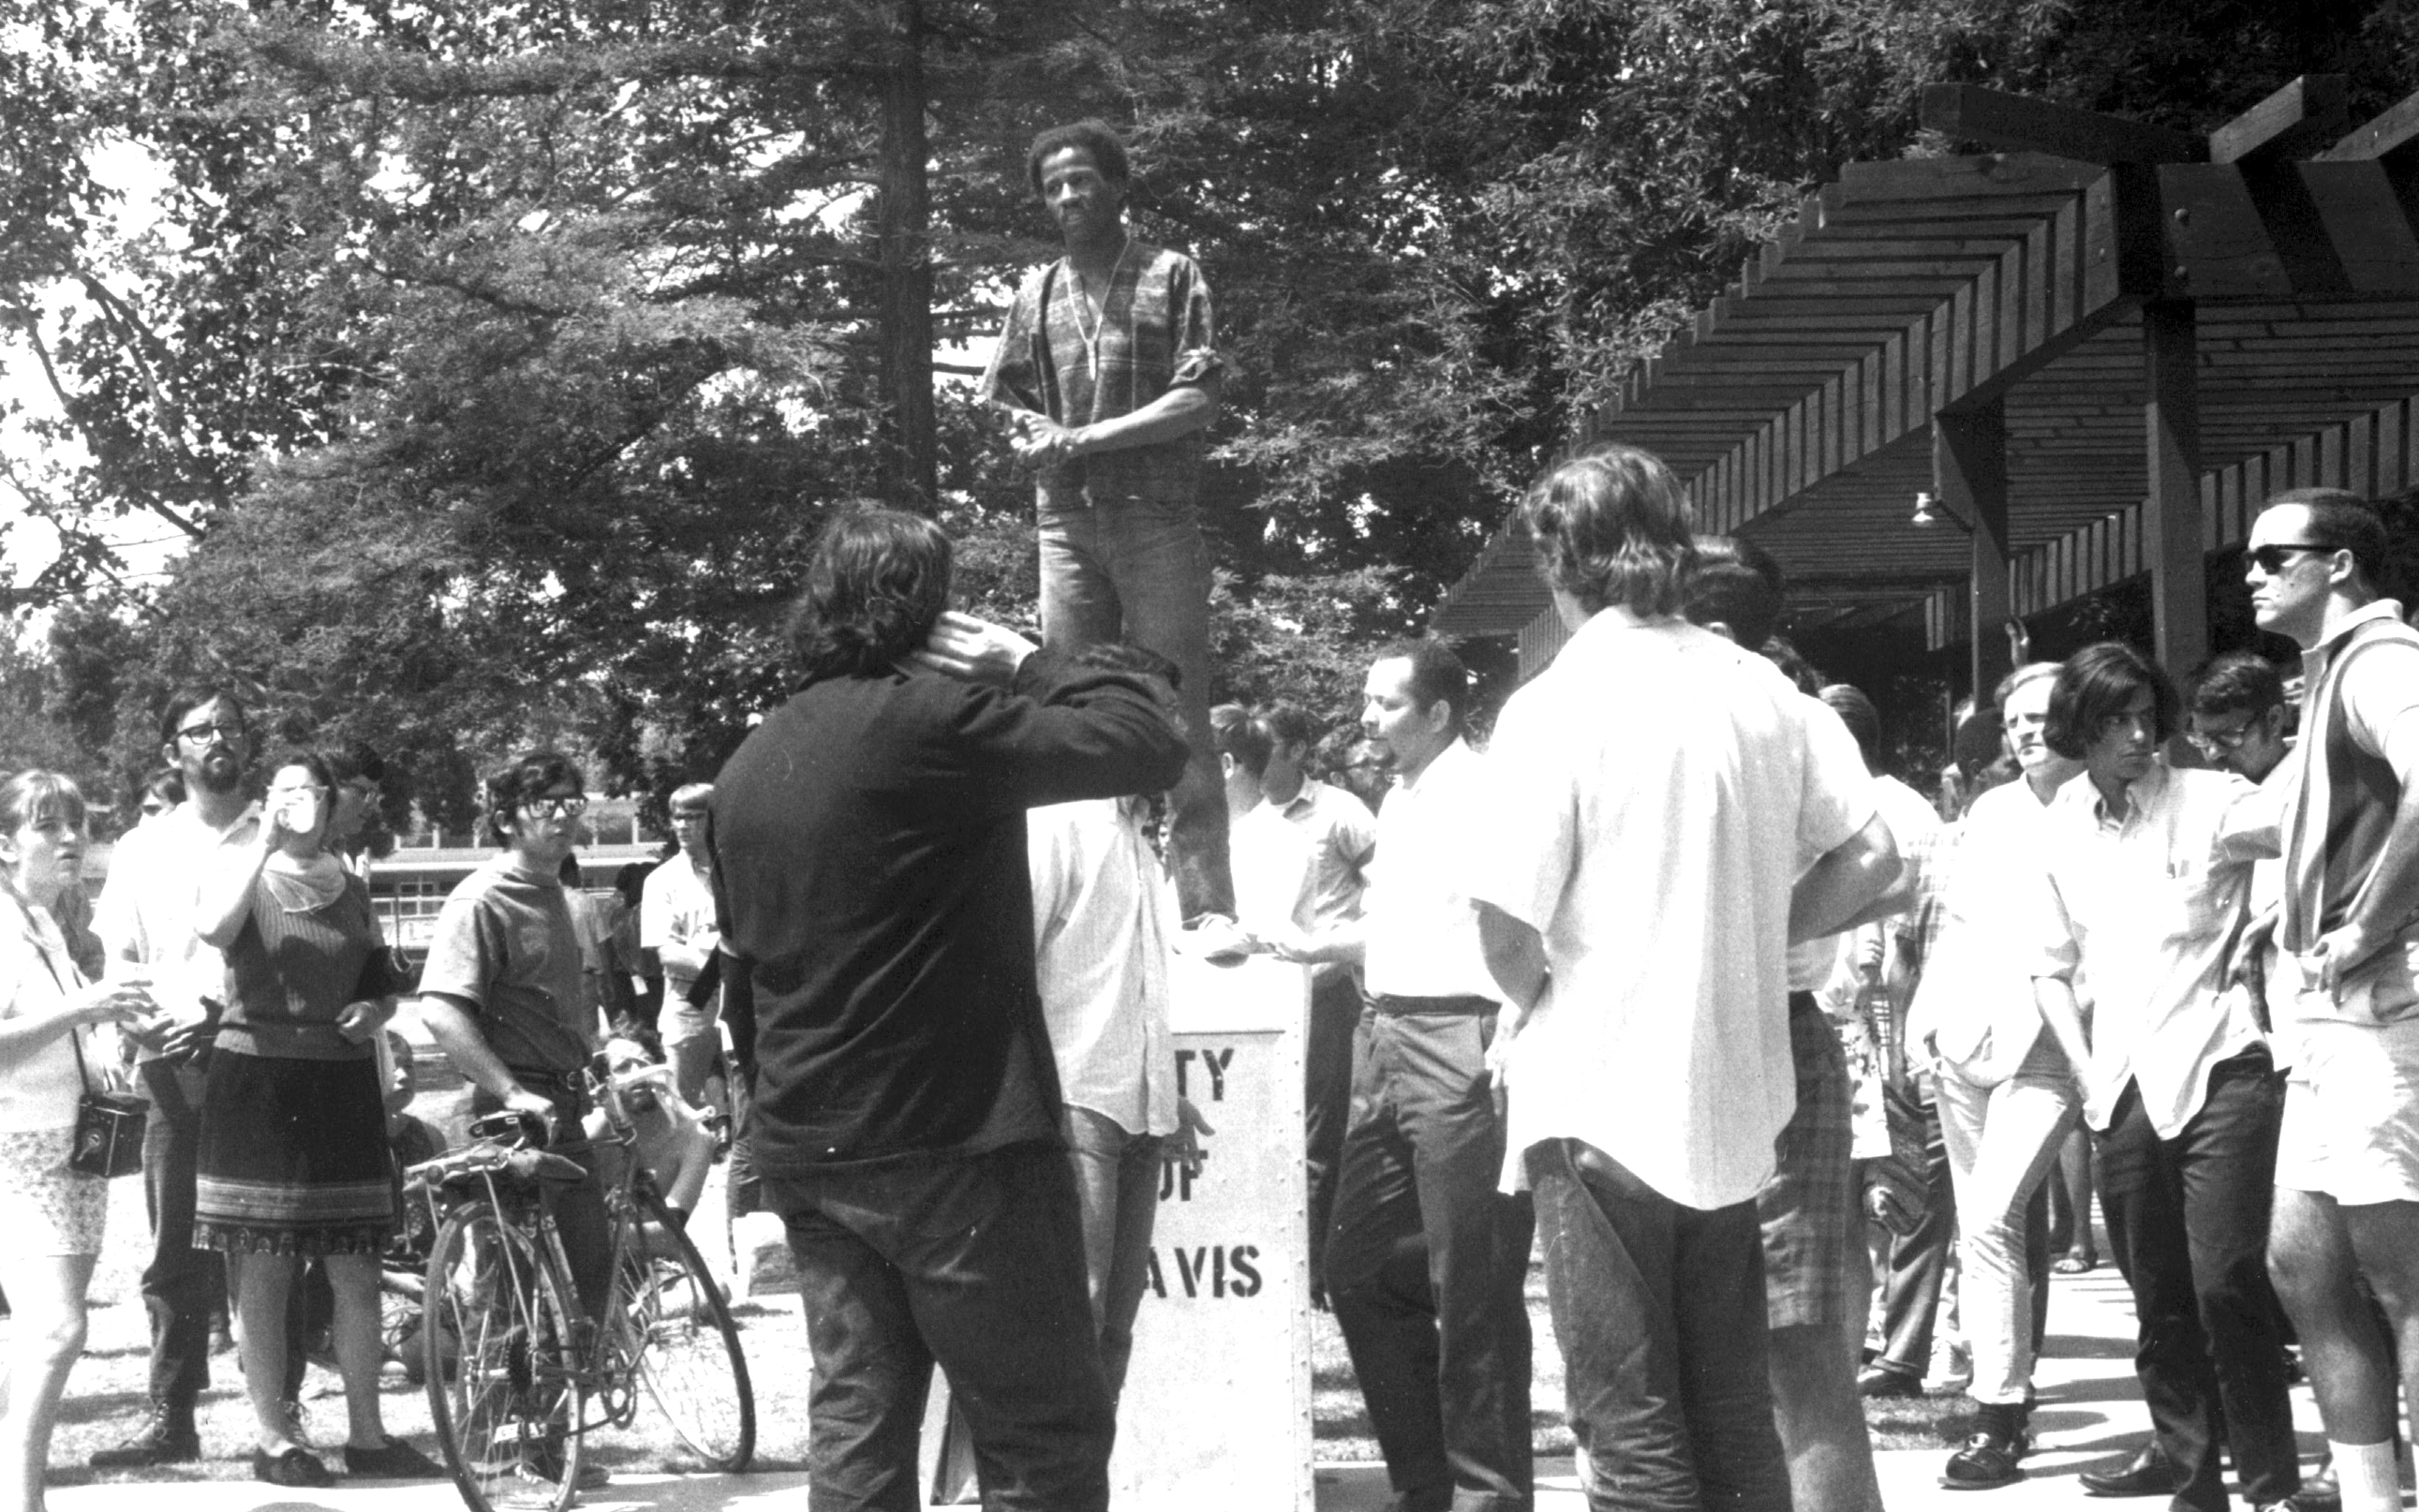 Mel Posey, one of the leaders of the Black Students' Union at UC Davis, headed a number of protest efforts on campus in 1969.